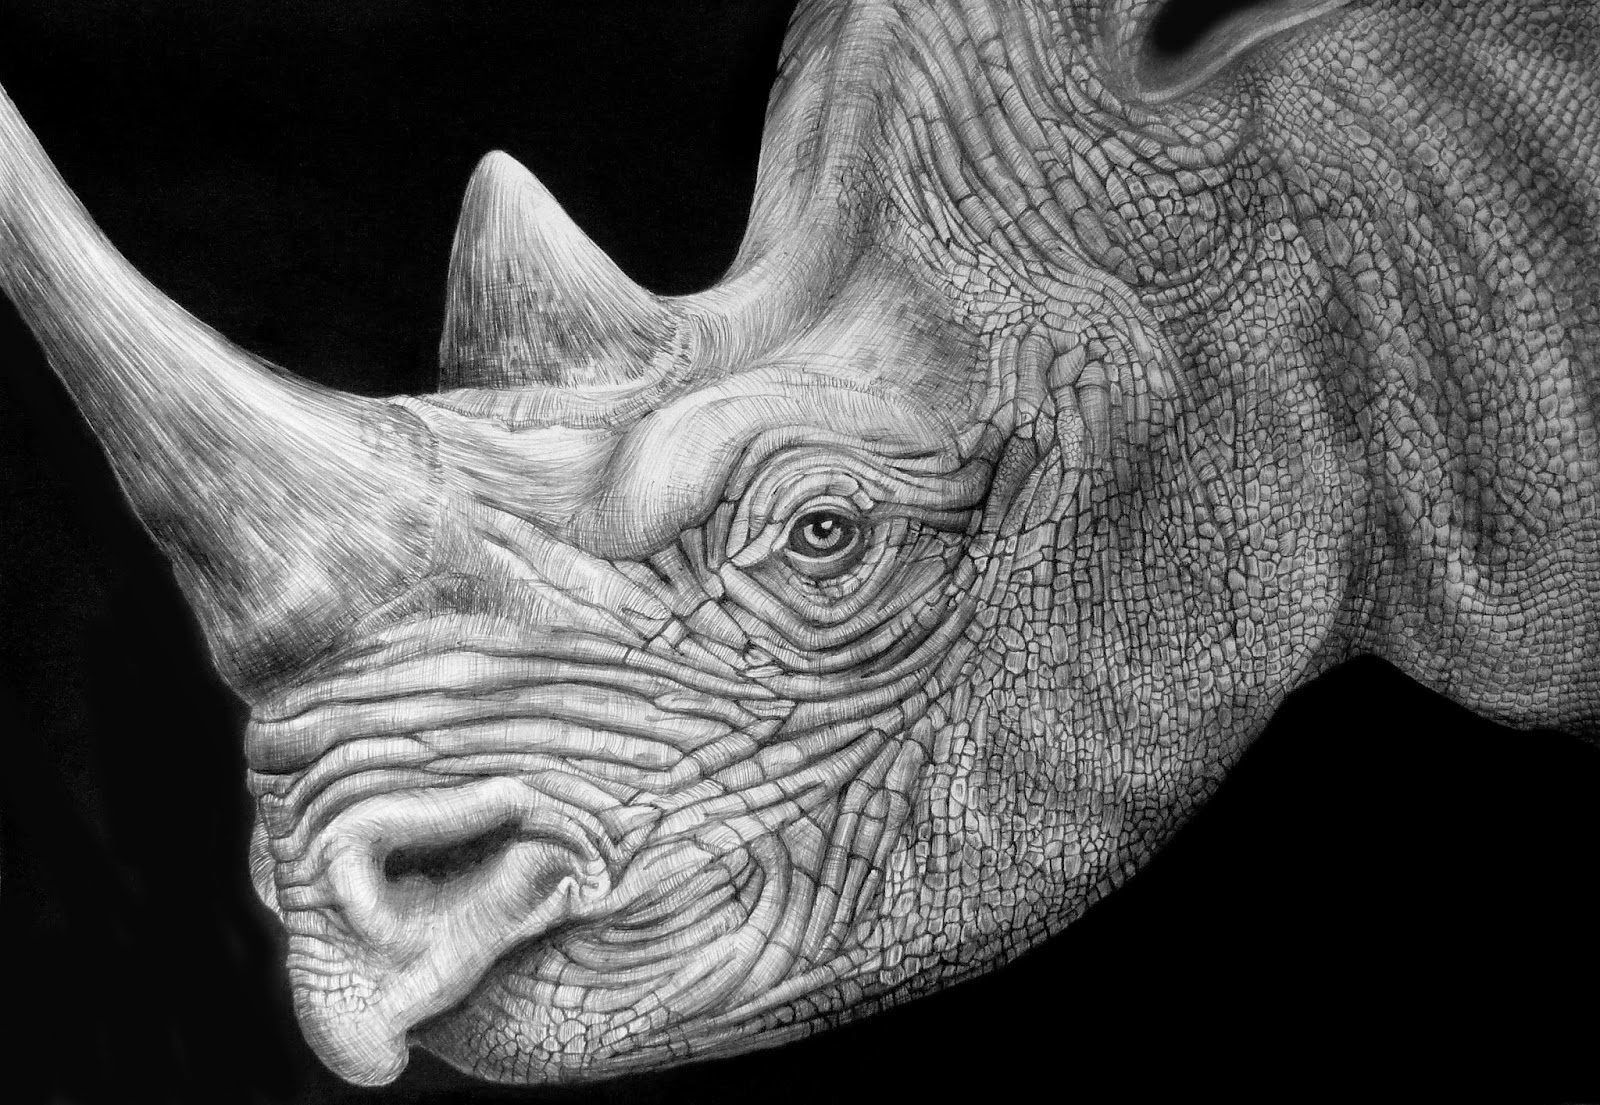 14-Black-Rhino-Tim-Jeffs-All-Creatures-Great-and-Small-Ink-Drawings-www-designstack-co